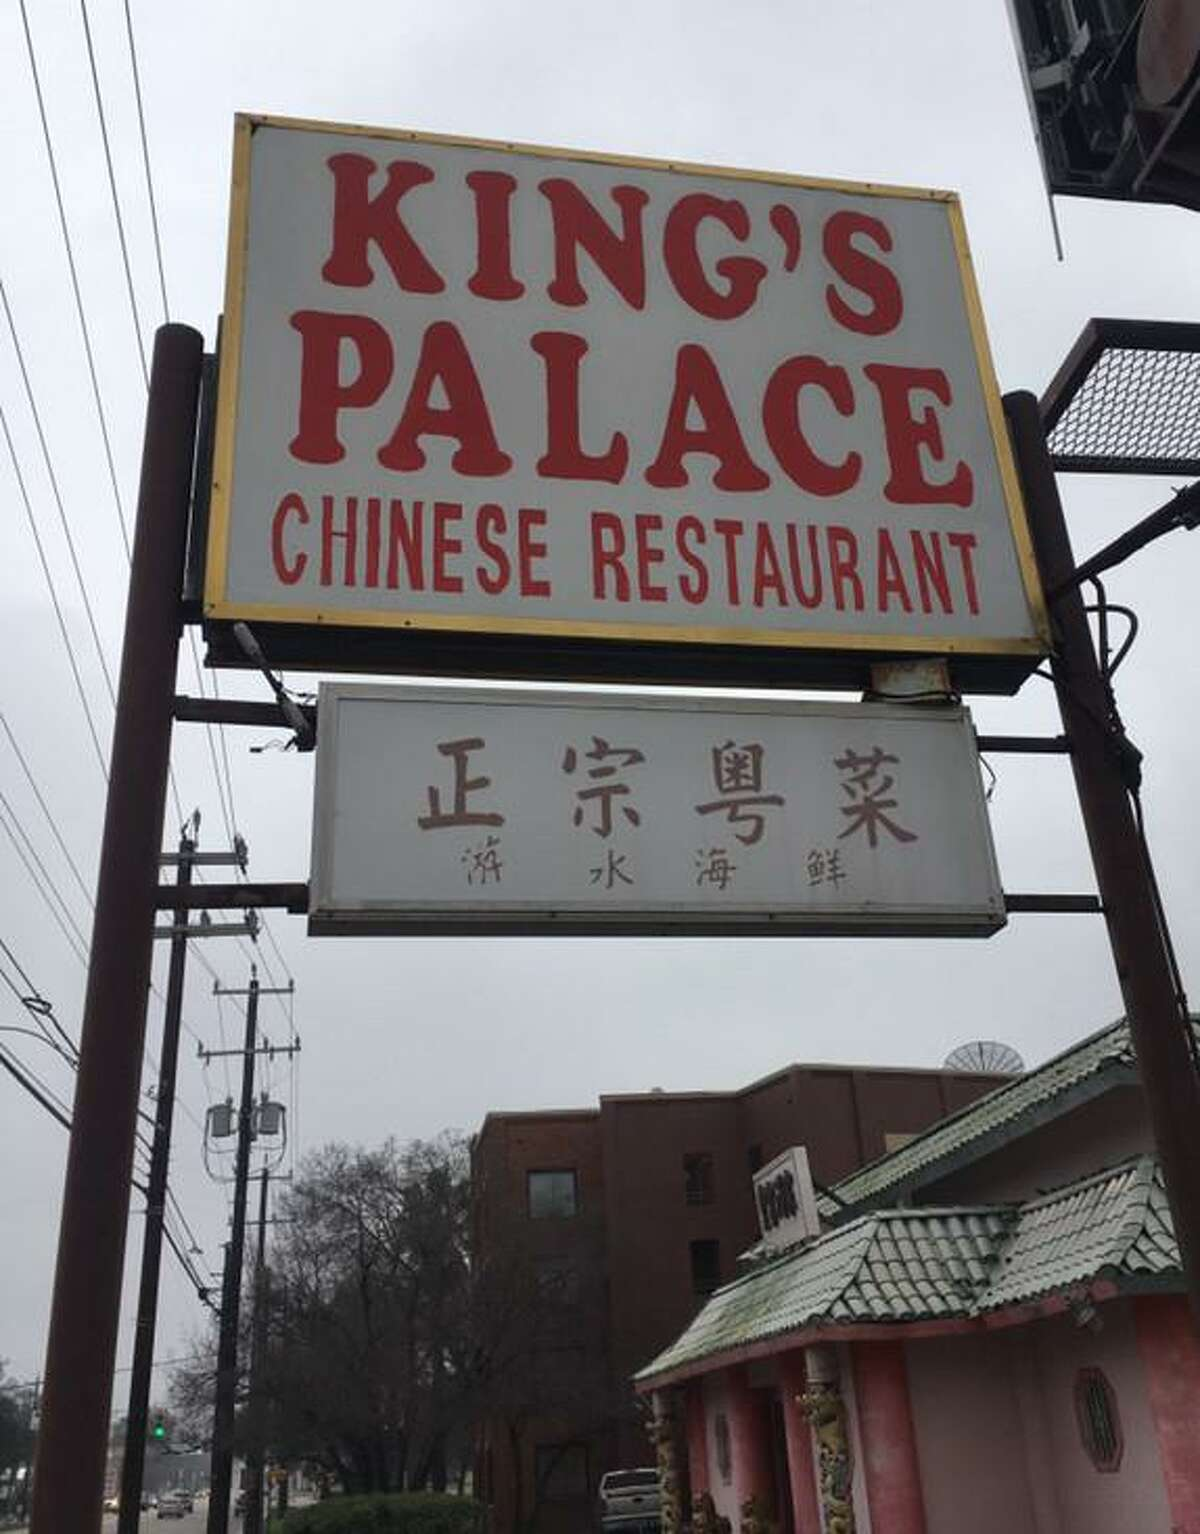 After 23 years in business, King's Palace at 3304 Broadway has closed for business. But a note posted on the front door said that there are plans to return to a new location nearby.